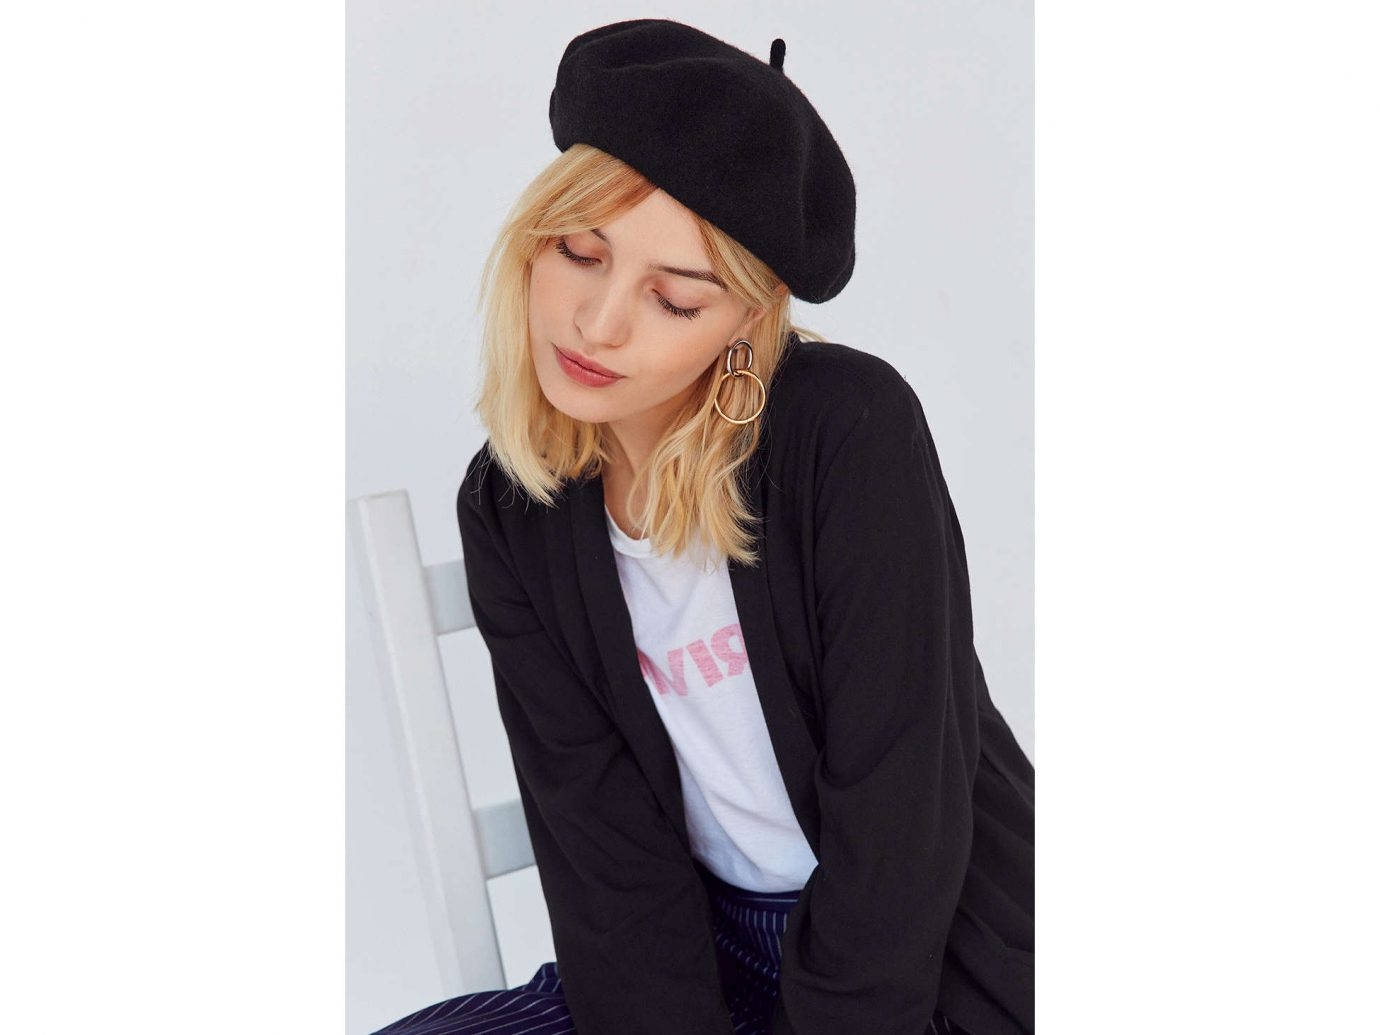 Style + Design Travel Shop person clothing woman wearing cap headgear beanie suit knit cap hat jacket sleeve dressed posing